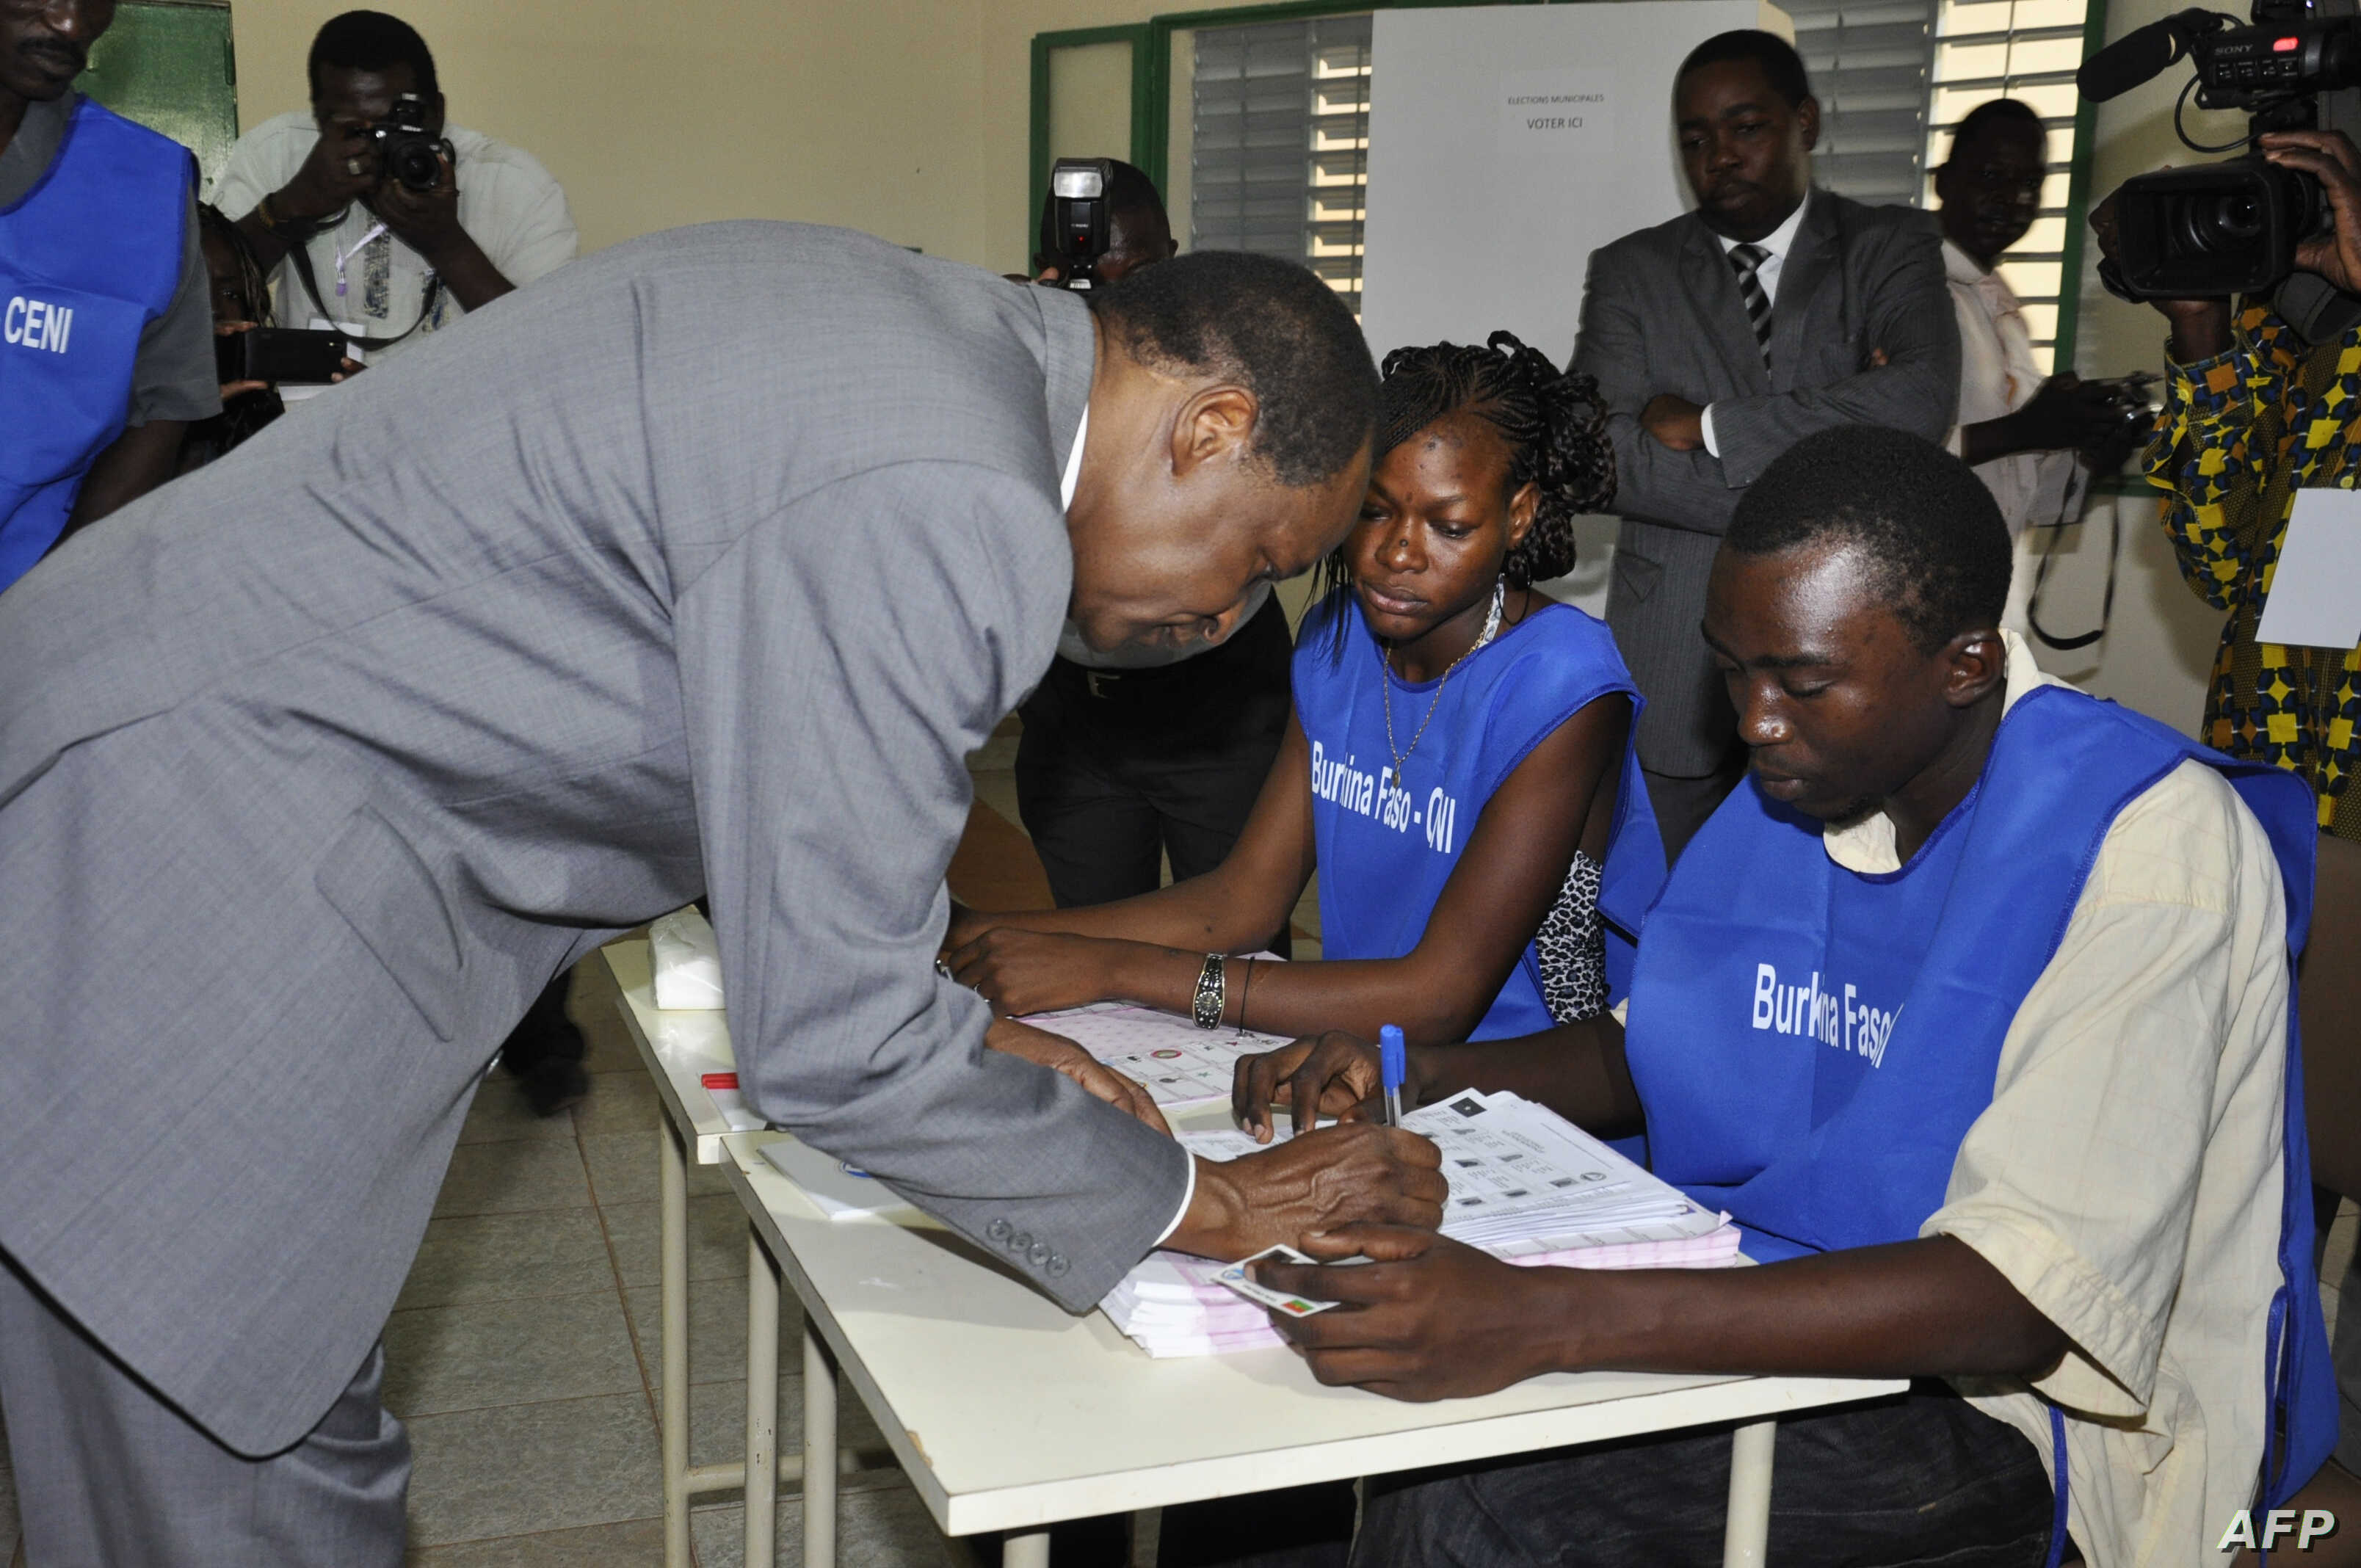 Burkina Faso incumbent President Blaise Compaore signs a document after casting his ballot at a polling station during legislative and municipal elections, in Ouagadougou, December 2, 2012.